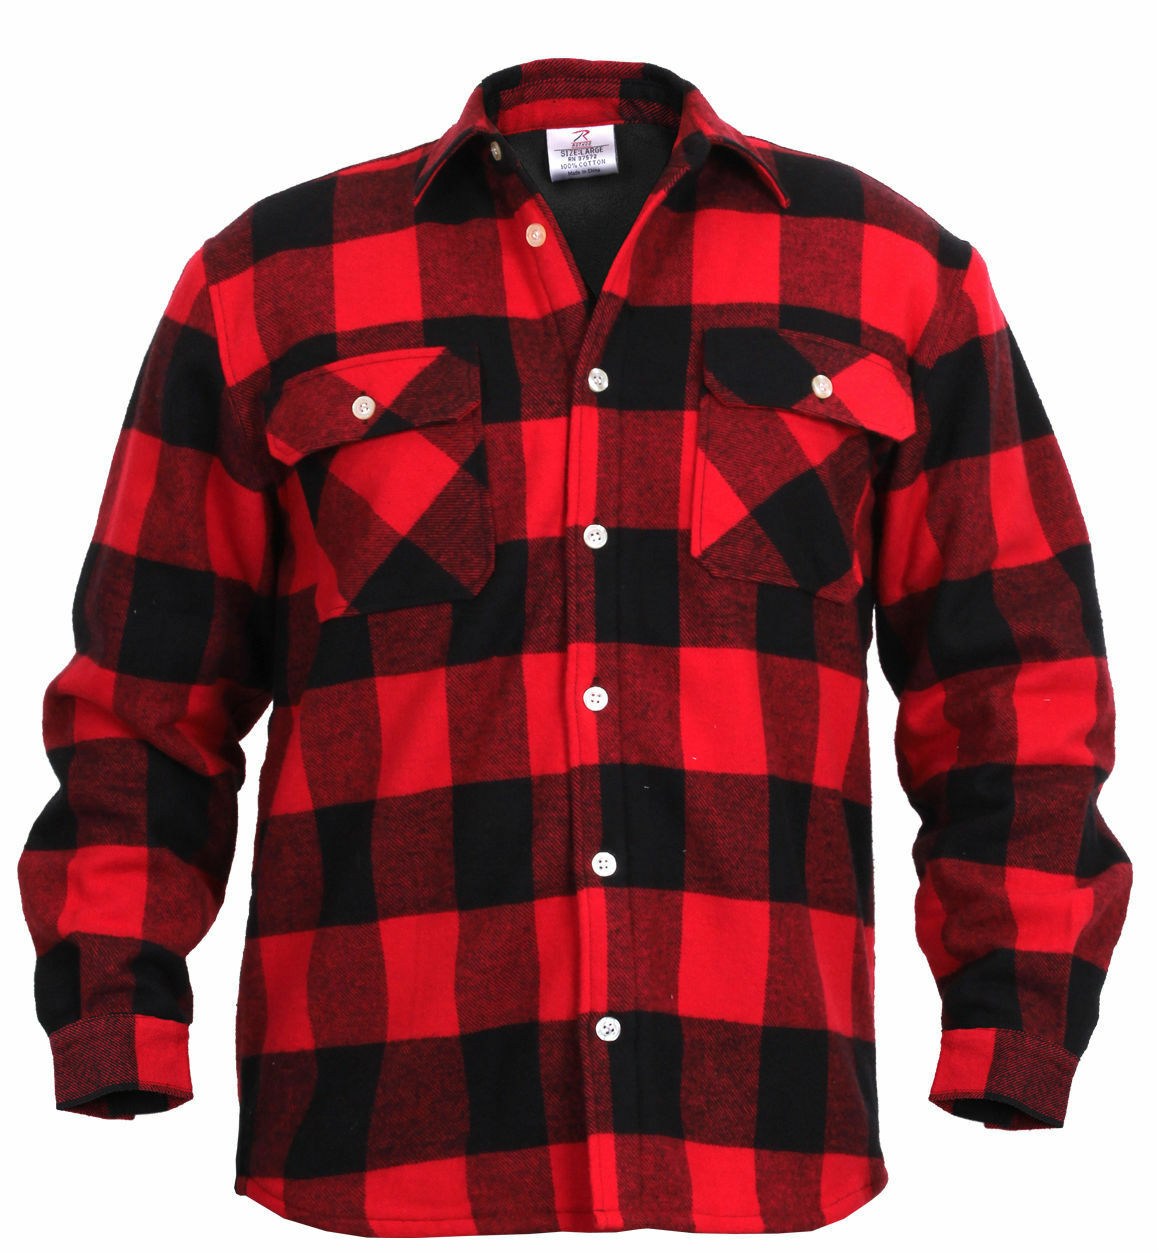 Fleece Lined Flannel Shirt Red Buffalo Plaid redcho 2739